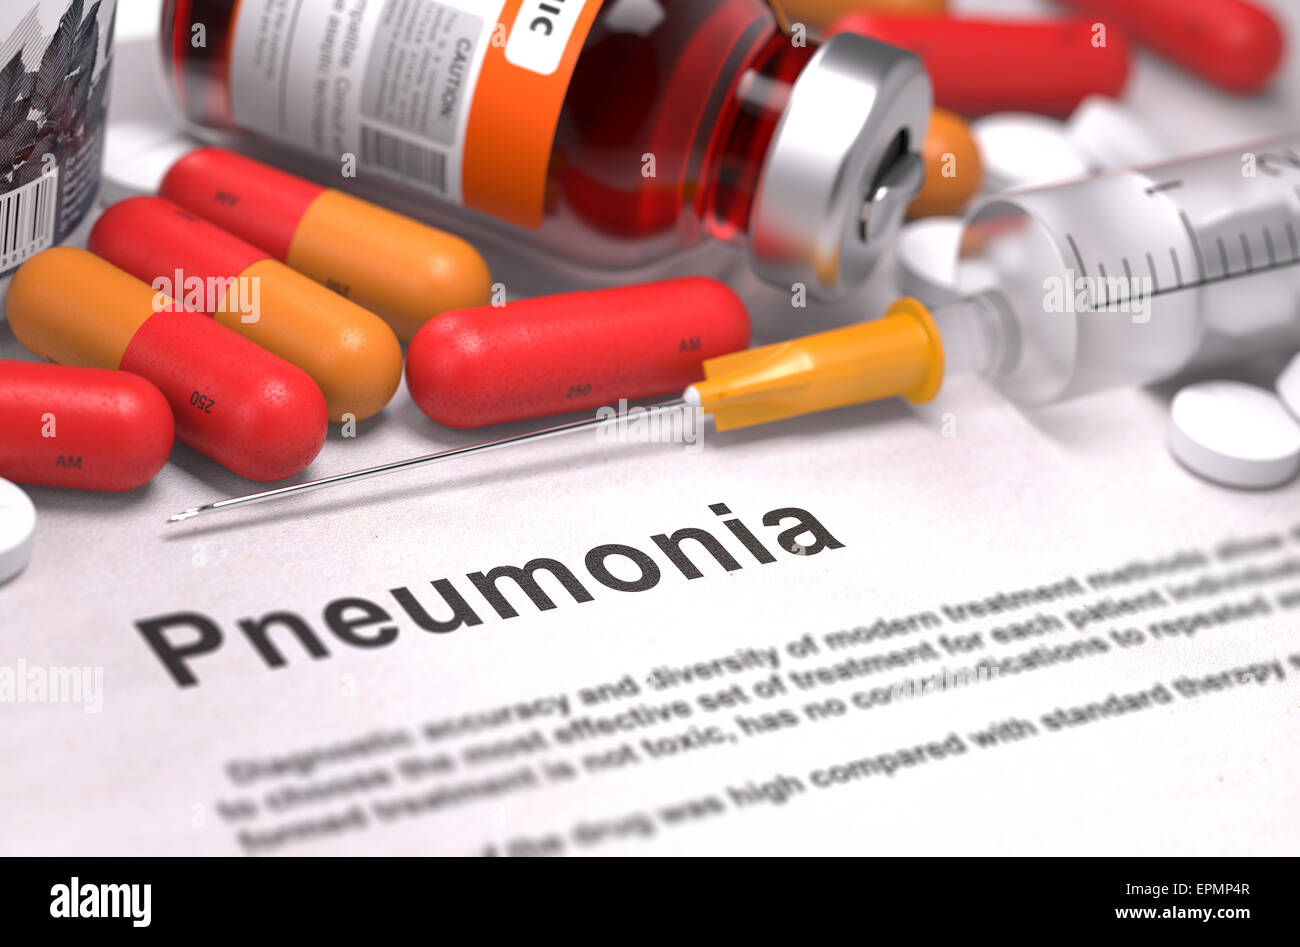 Diagnosis - Pneumonia. Medical Report with Composition of Medicaments - Red Pills, Injections and Syringe. Selective - Stock Image